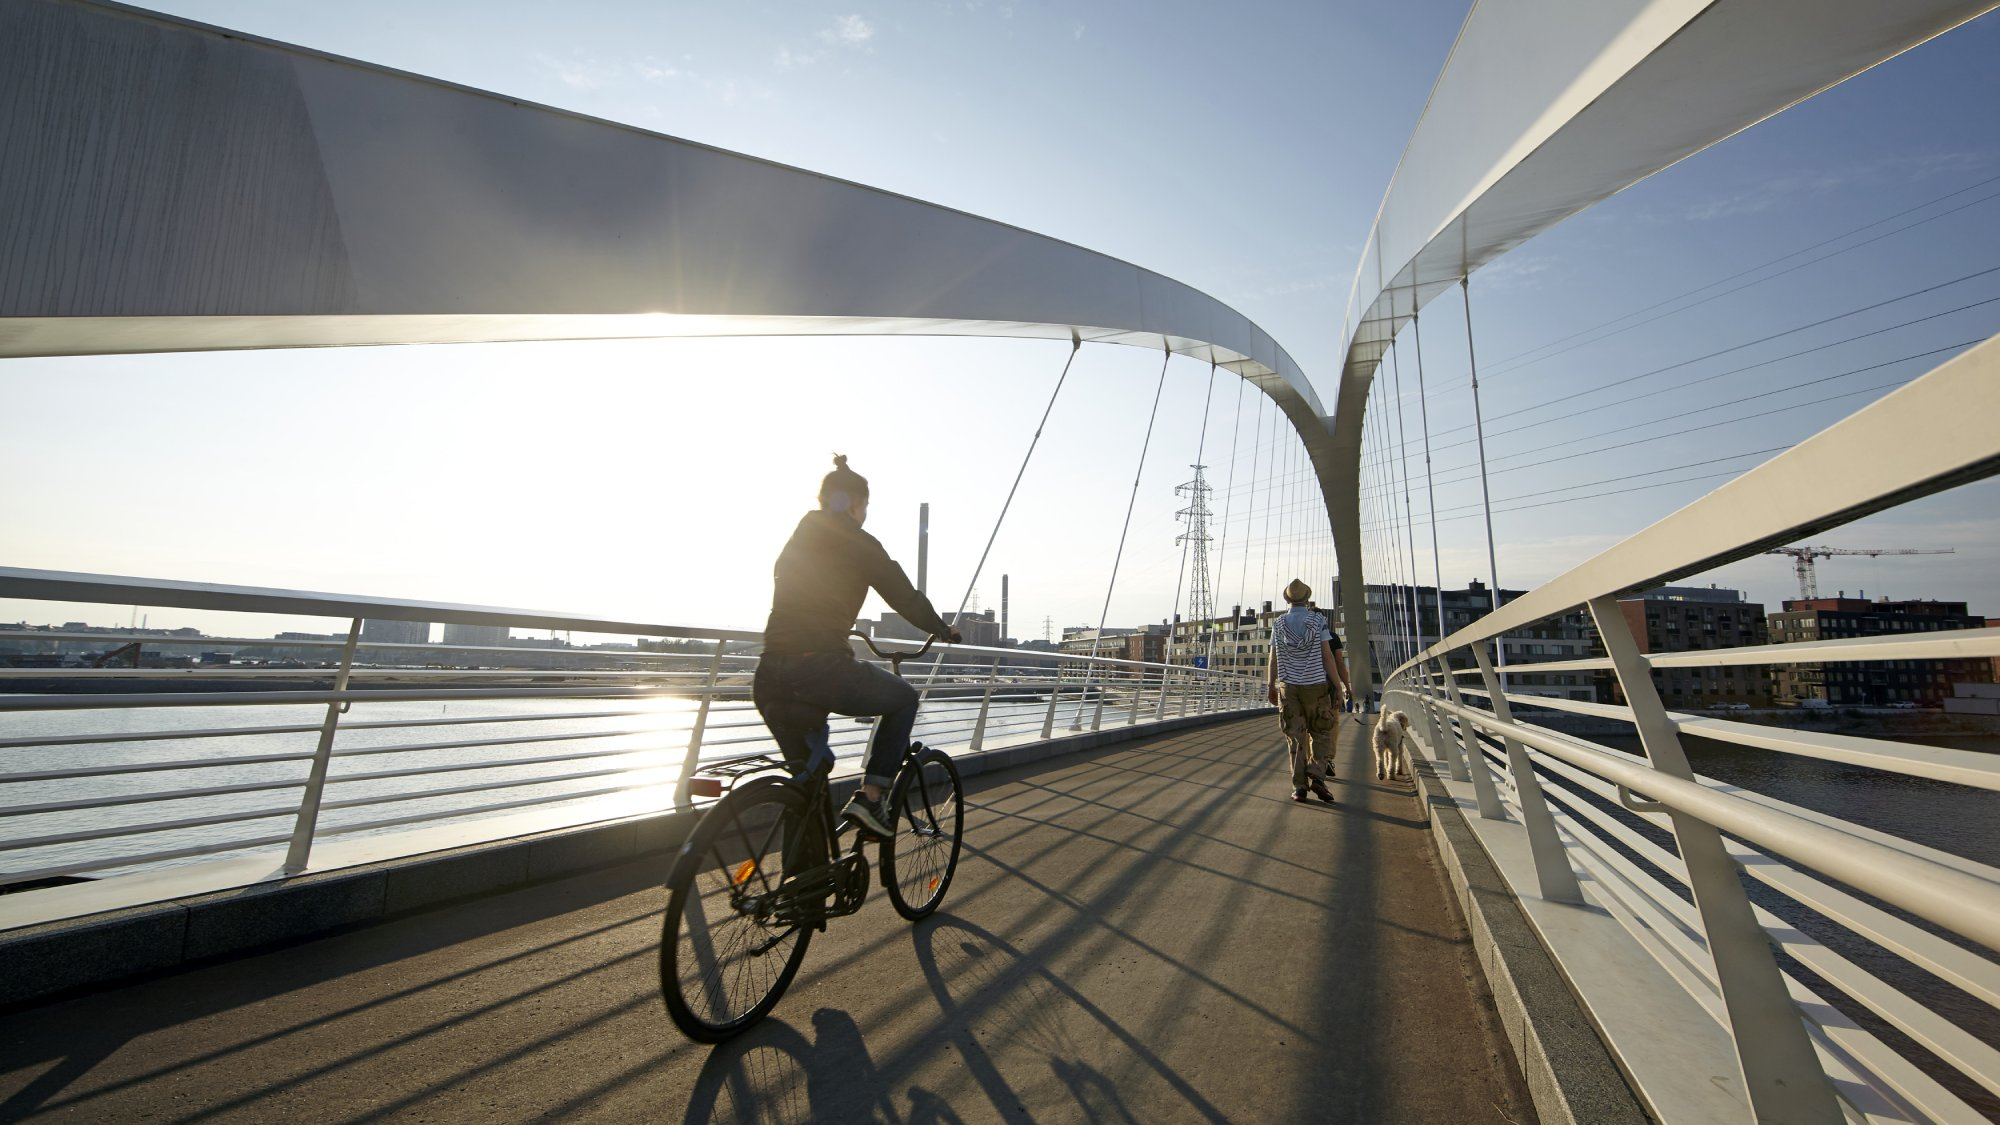 A cyclist and a pedestrian walking a dog crossing a bridge.